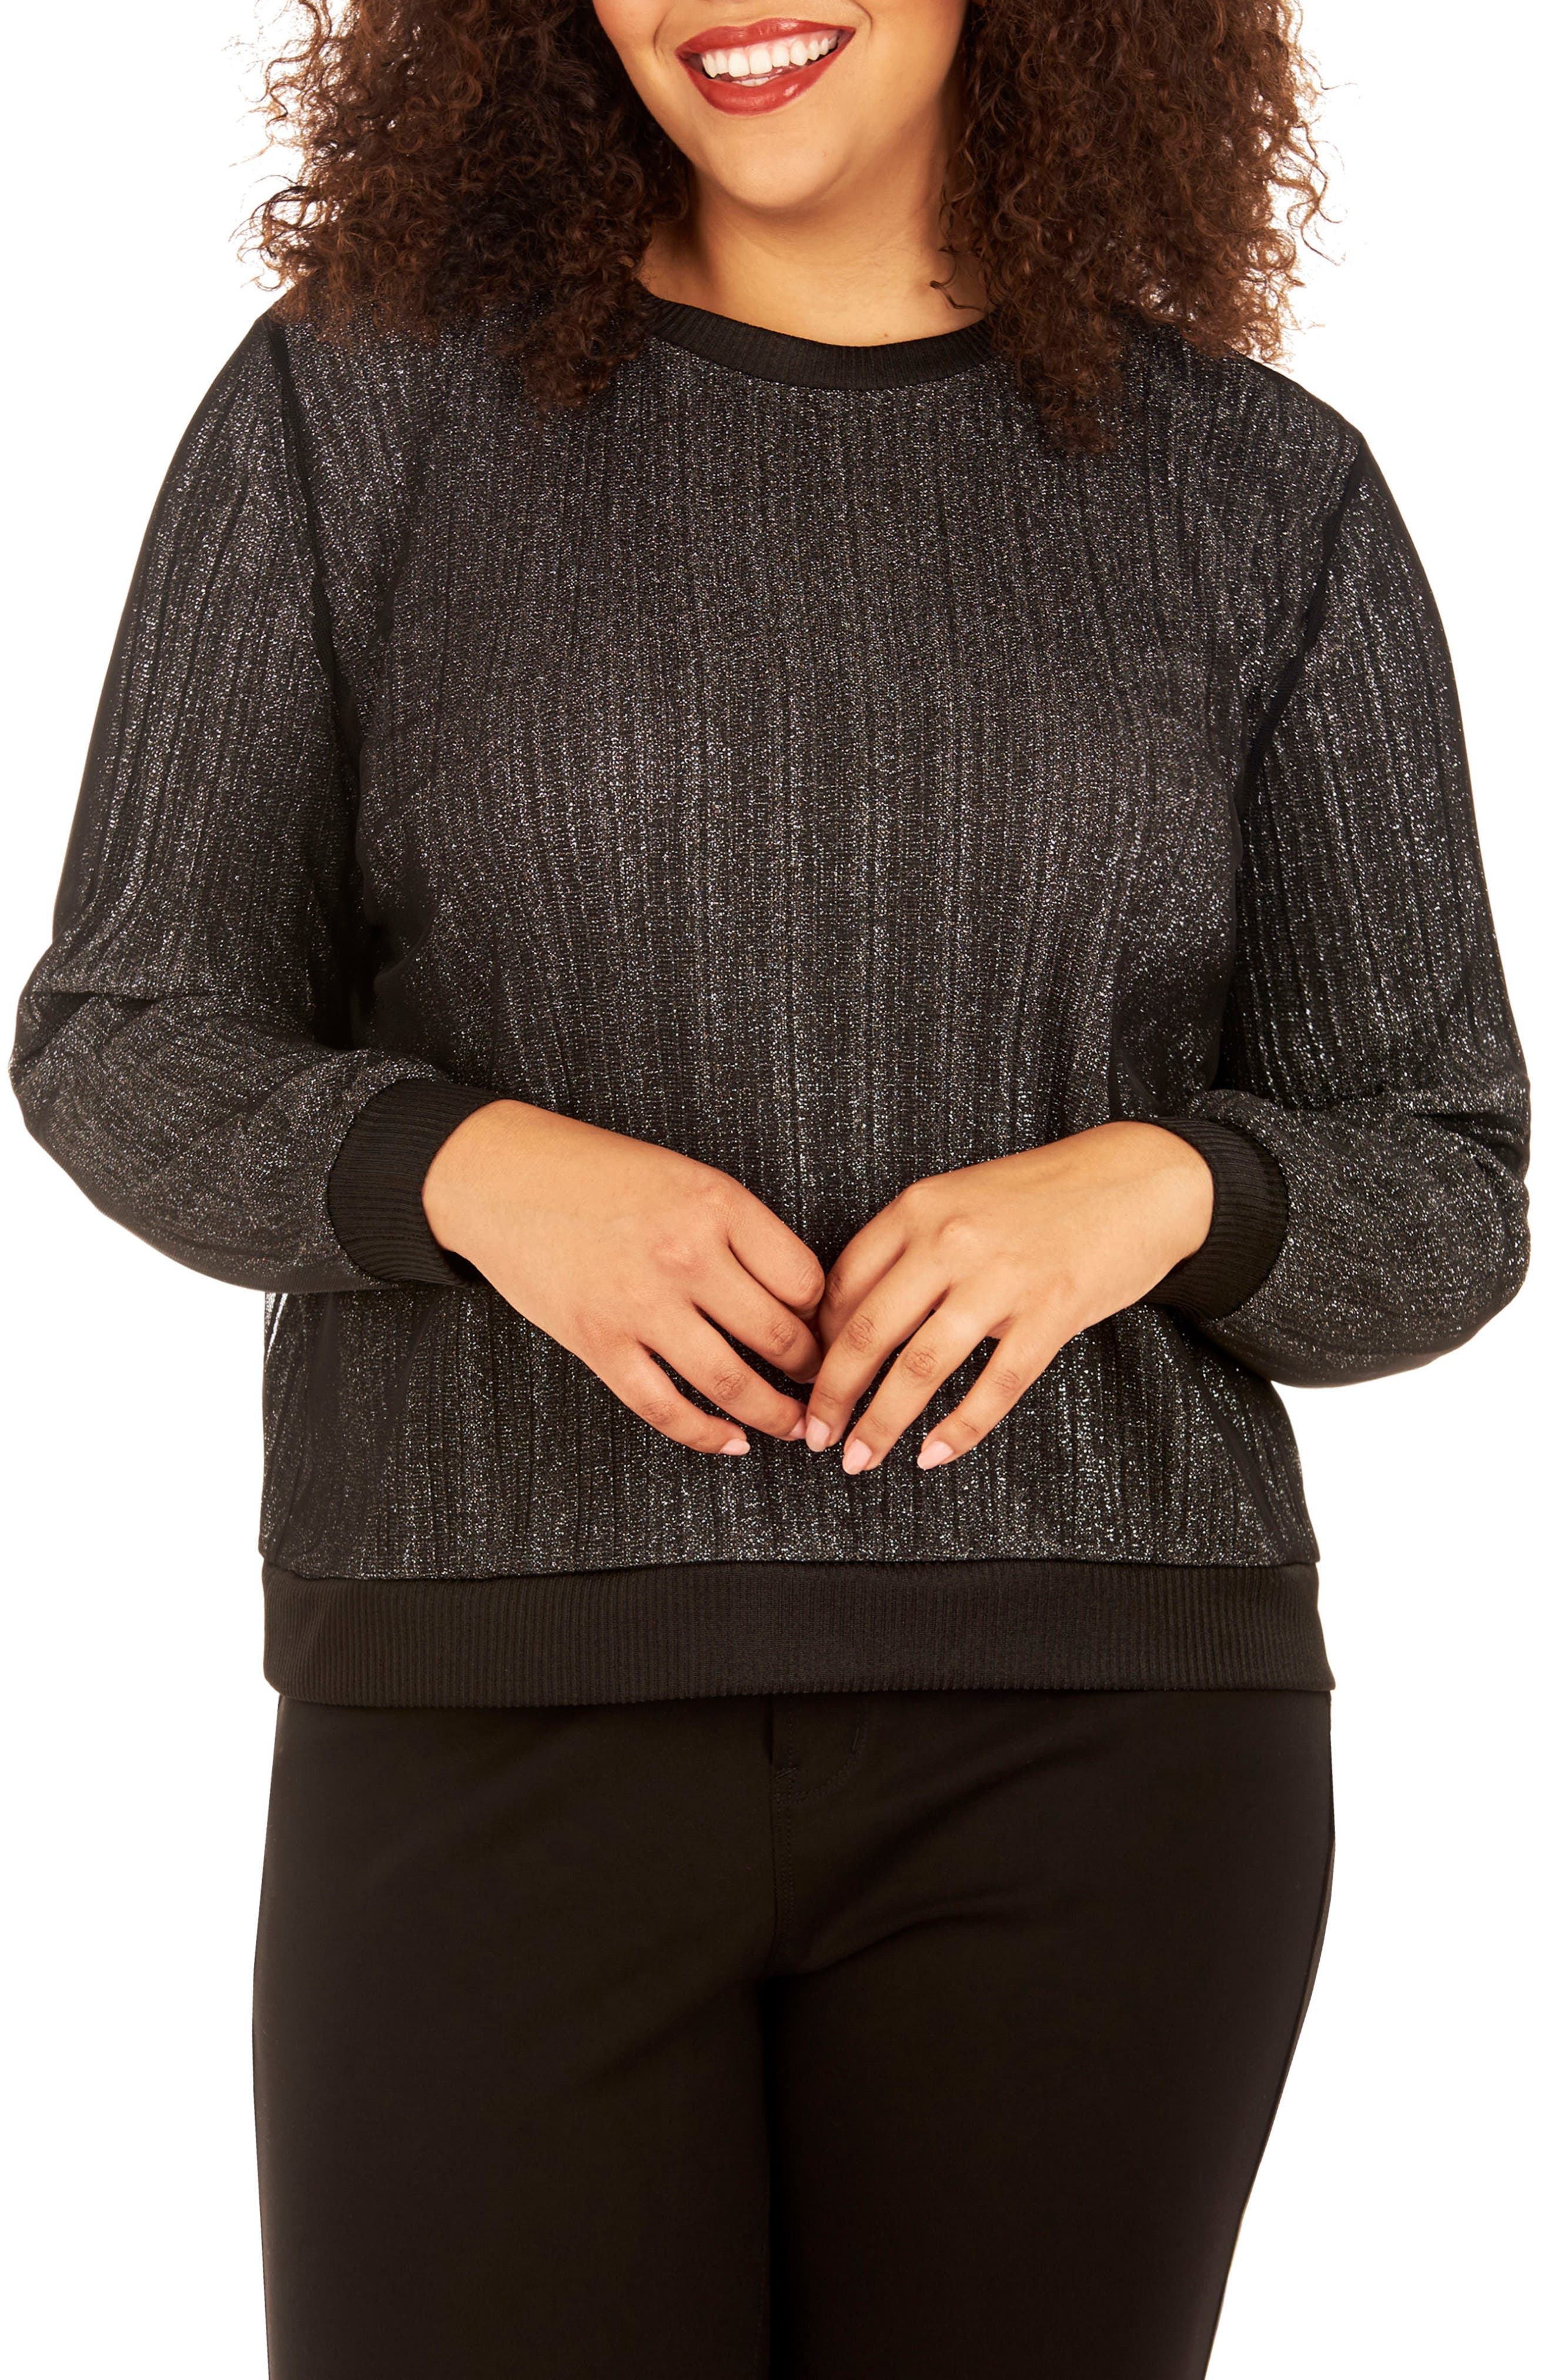 Alternate Image 1 Selected - Rebel Wilson x Angels Glitter Knit Top (Plus Size)